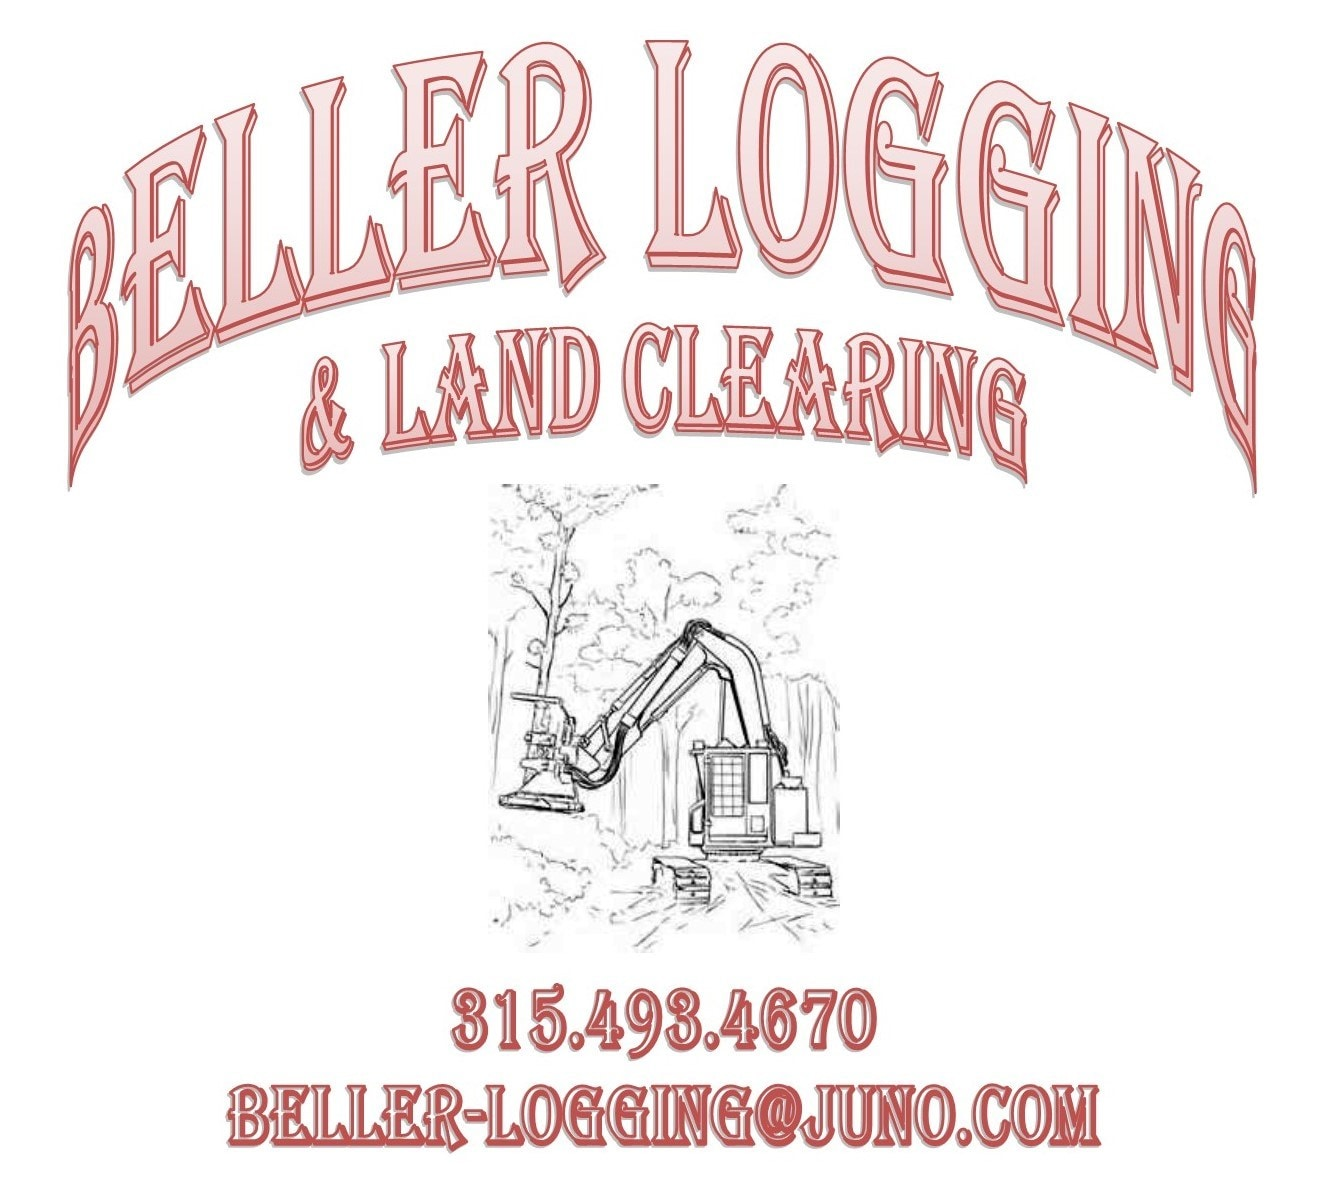 Beller Logging & Land Clearing